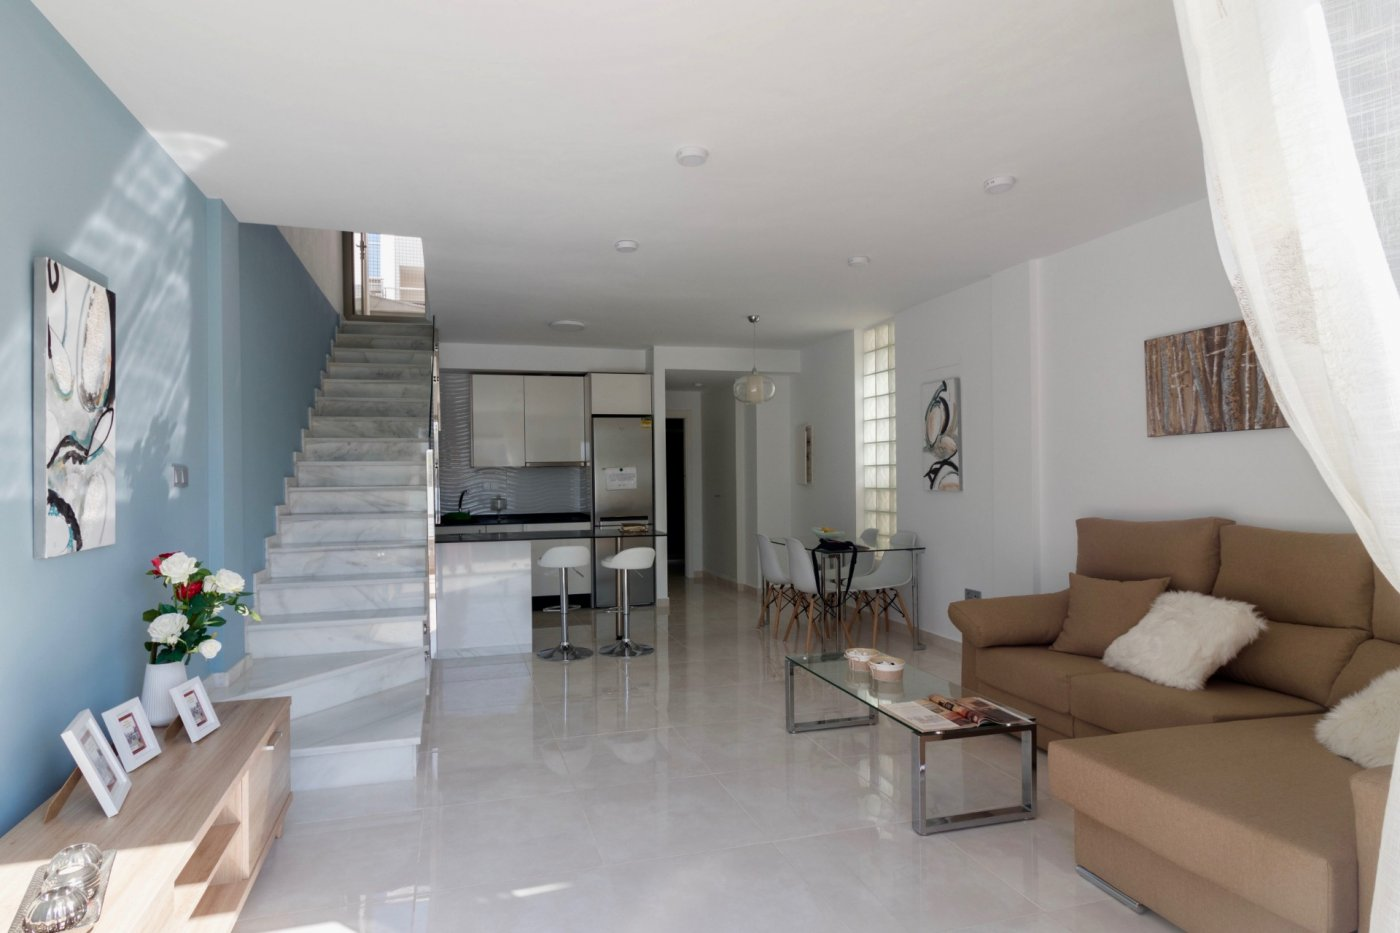 Image 6  ref 3265-02929 for sale in Los Alcázares Spain - Quality Homes Costa Cálida